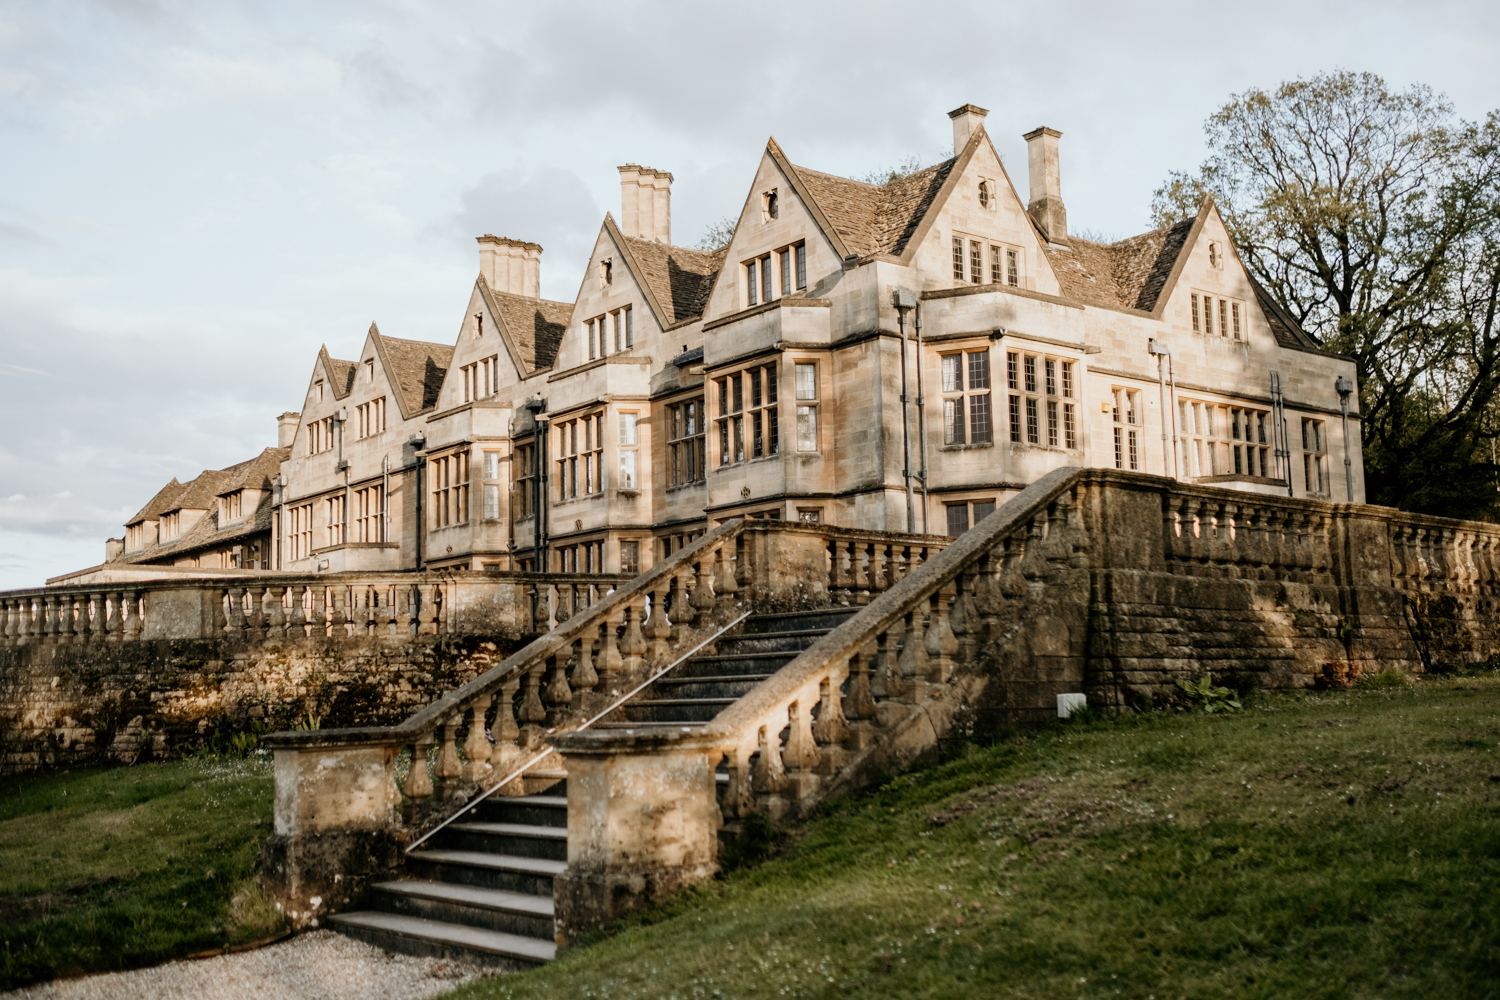 Coombe Lodge Blagdon wedding venue by Somerset wedding photographer